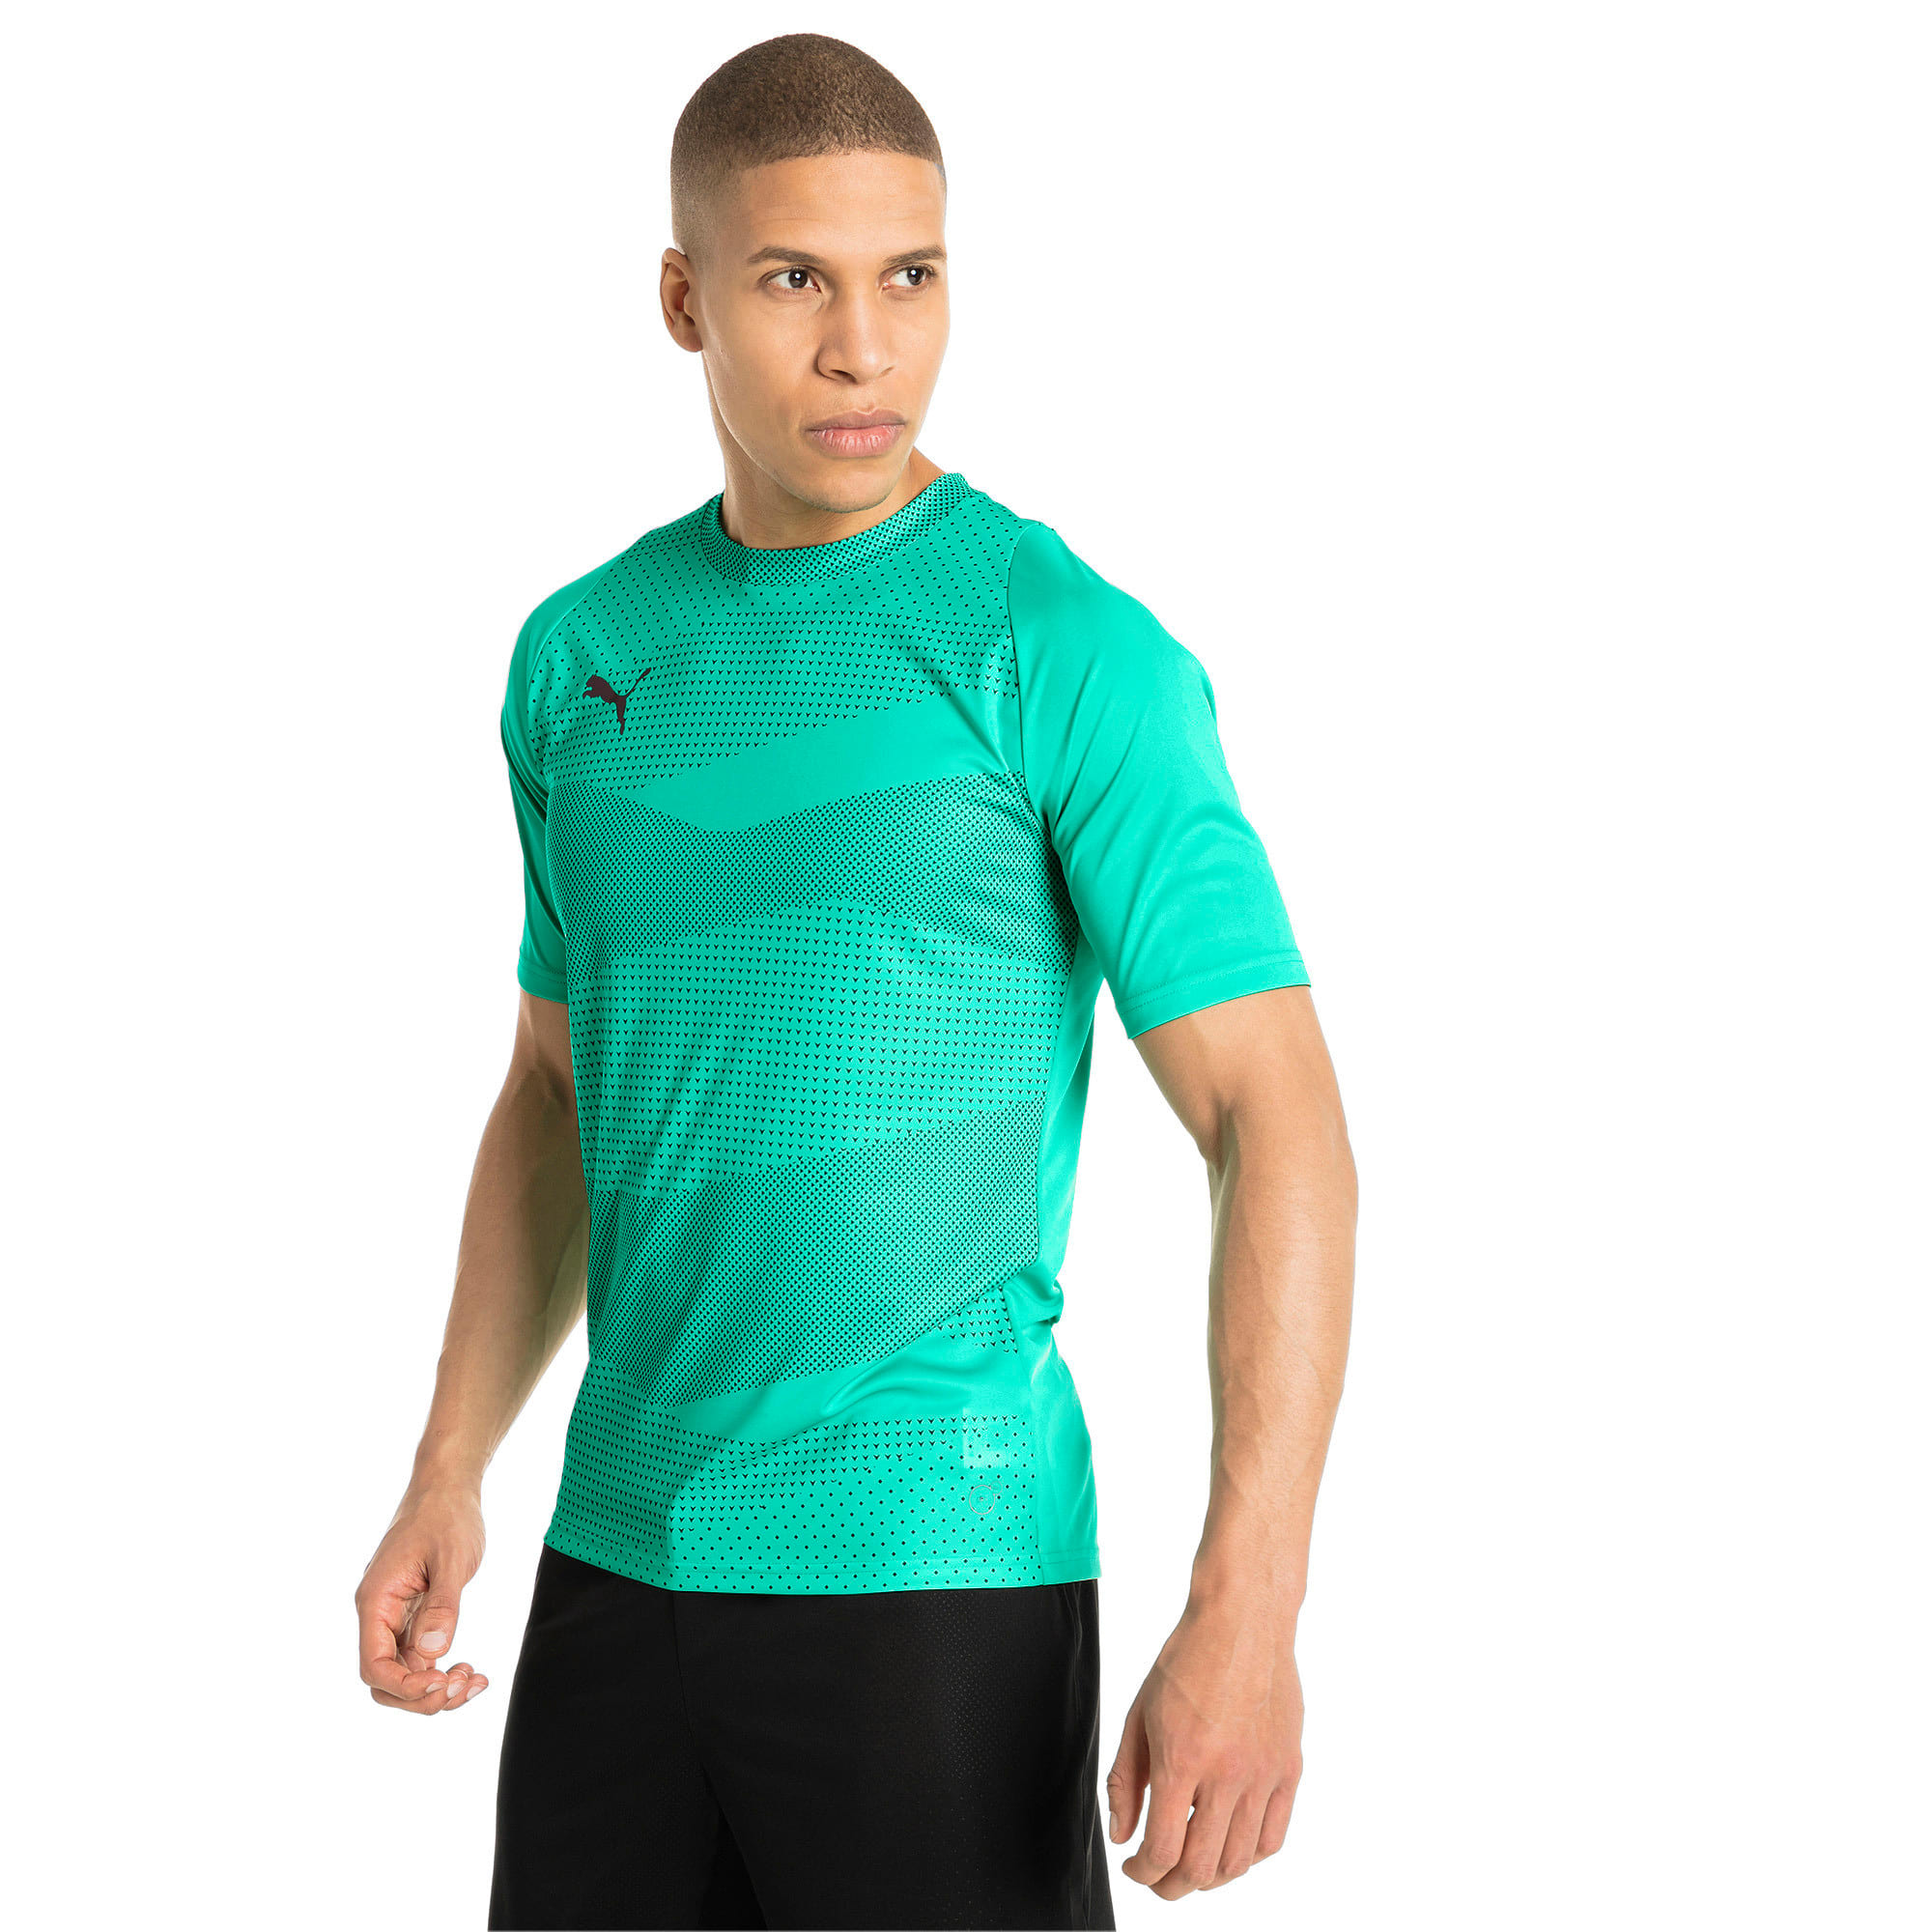 Thumbnail 2 of ftblNXT Graphic Core Men's Training Top, Biscay Green-Iron Gate, medium